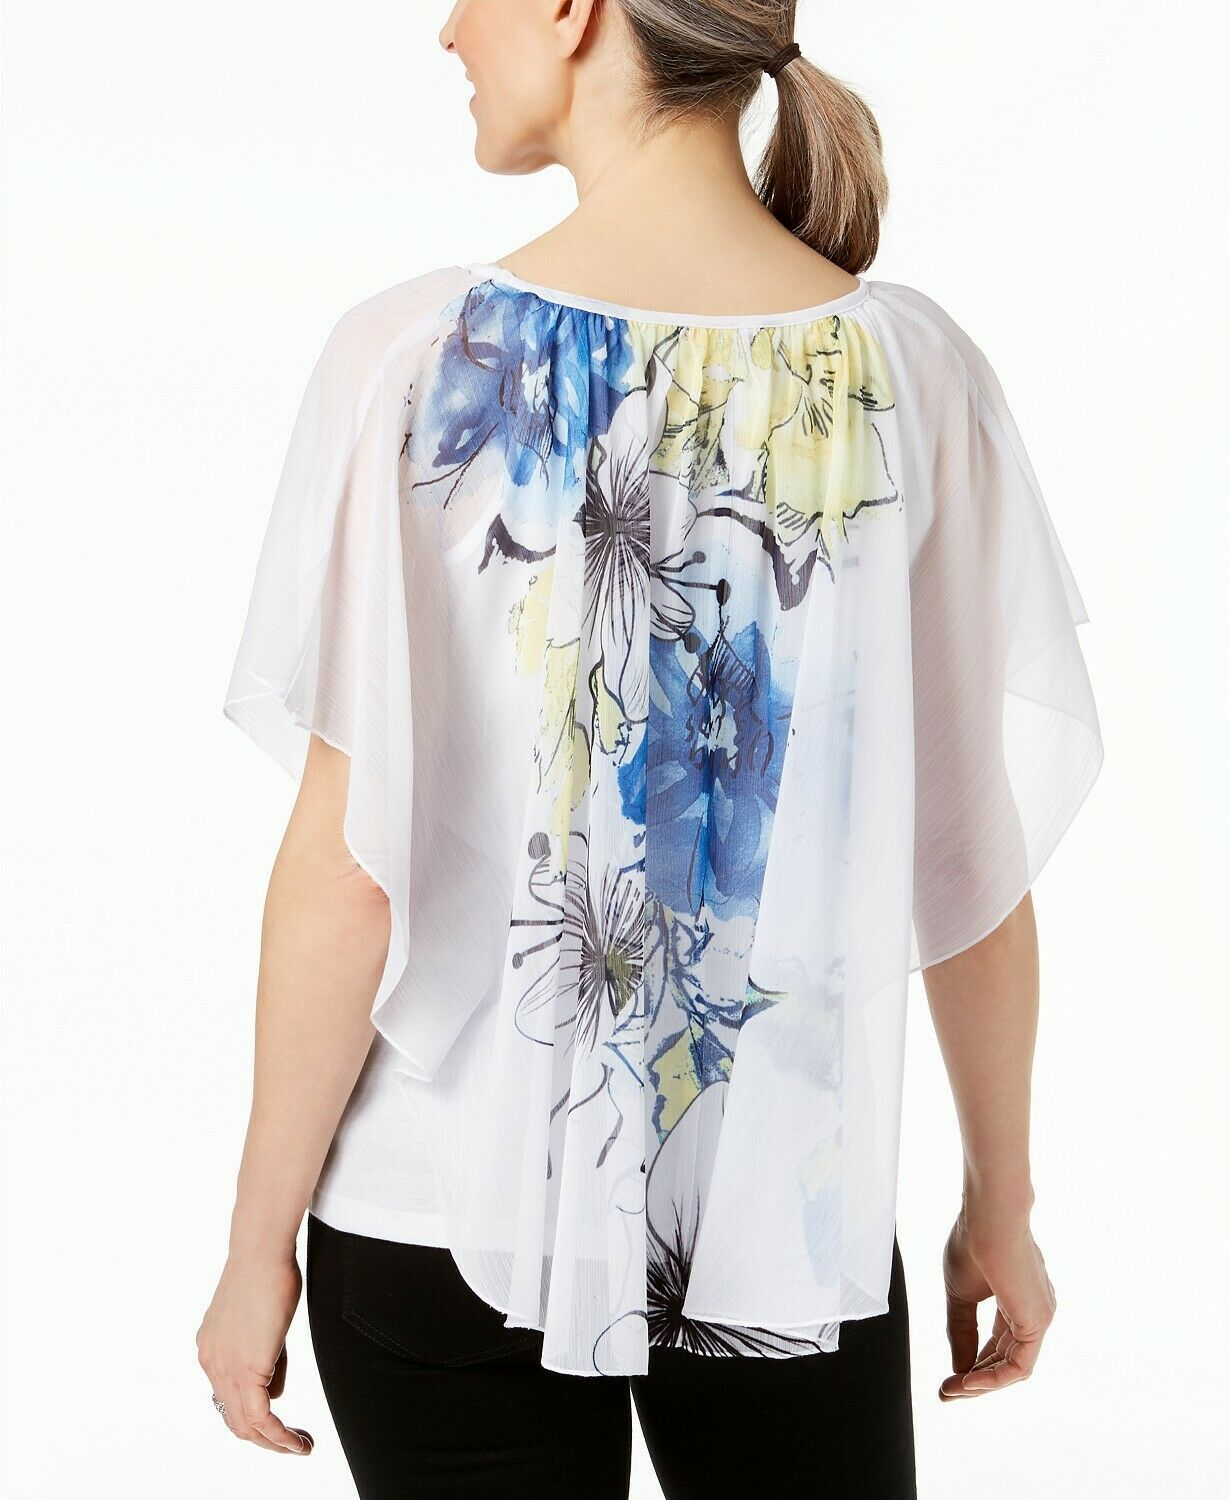 JM Collection WOMEN'S  Printed Poncho Blouse, WHITE MULTI SIZE XXL MSRP$49.50